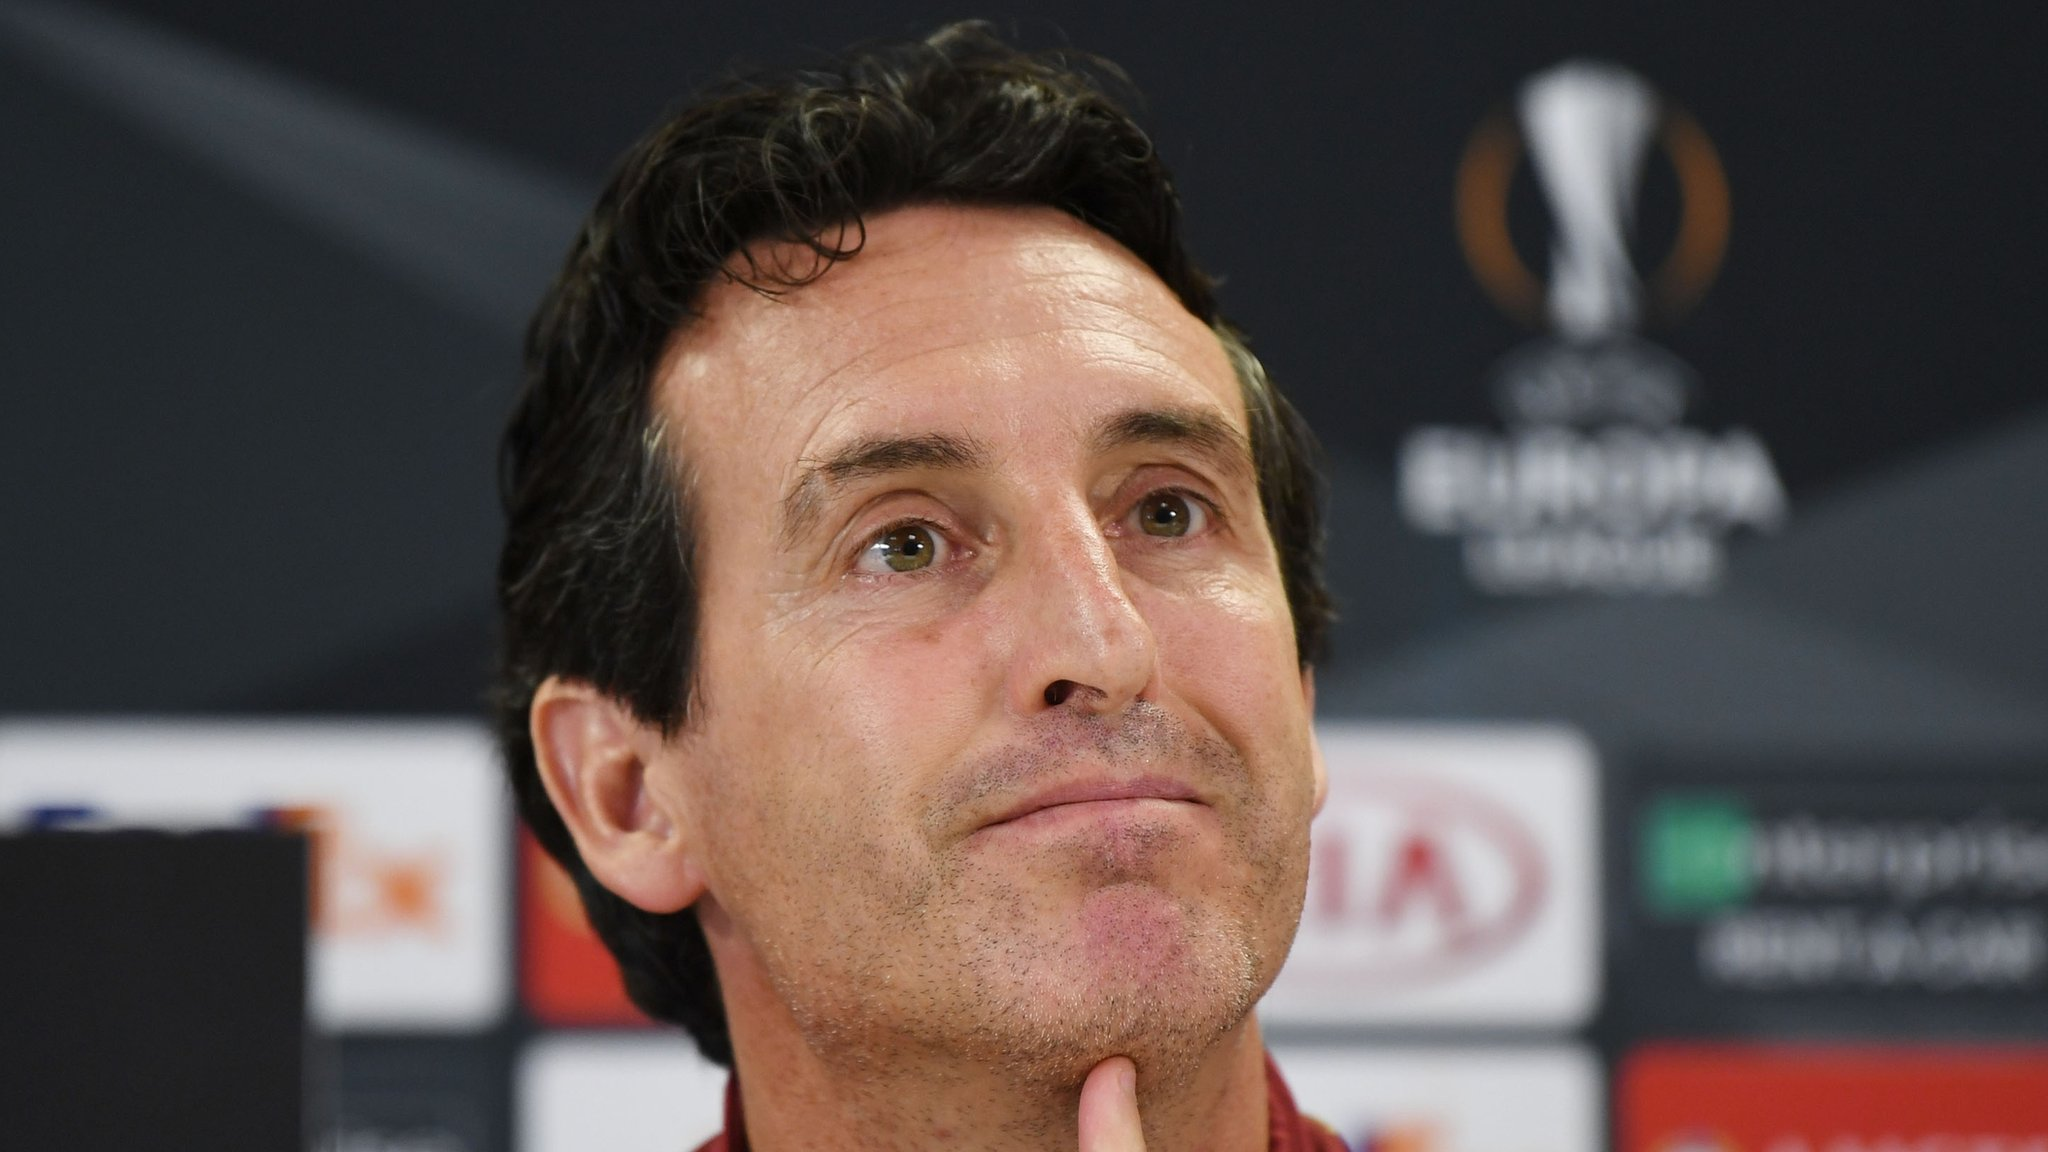 Premier League tops Arsenal priority list - Emery